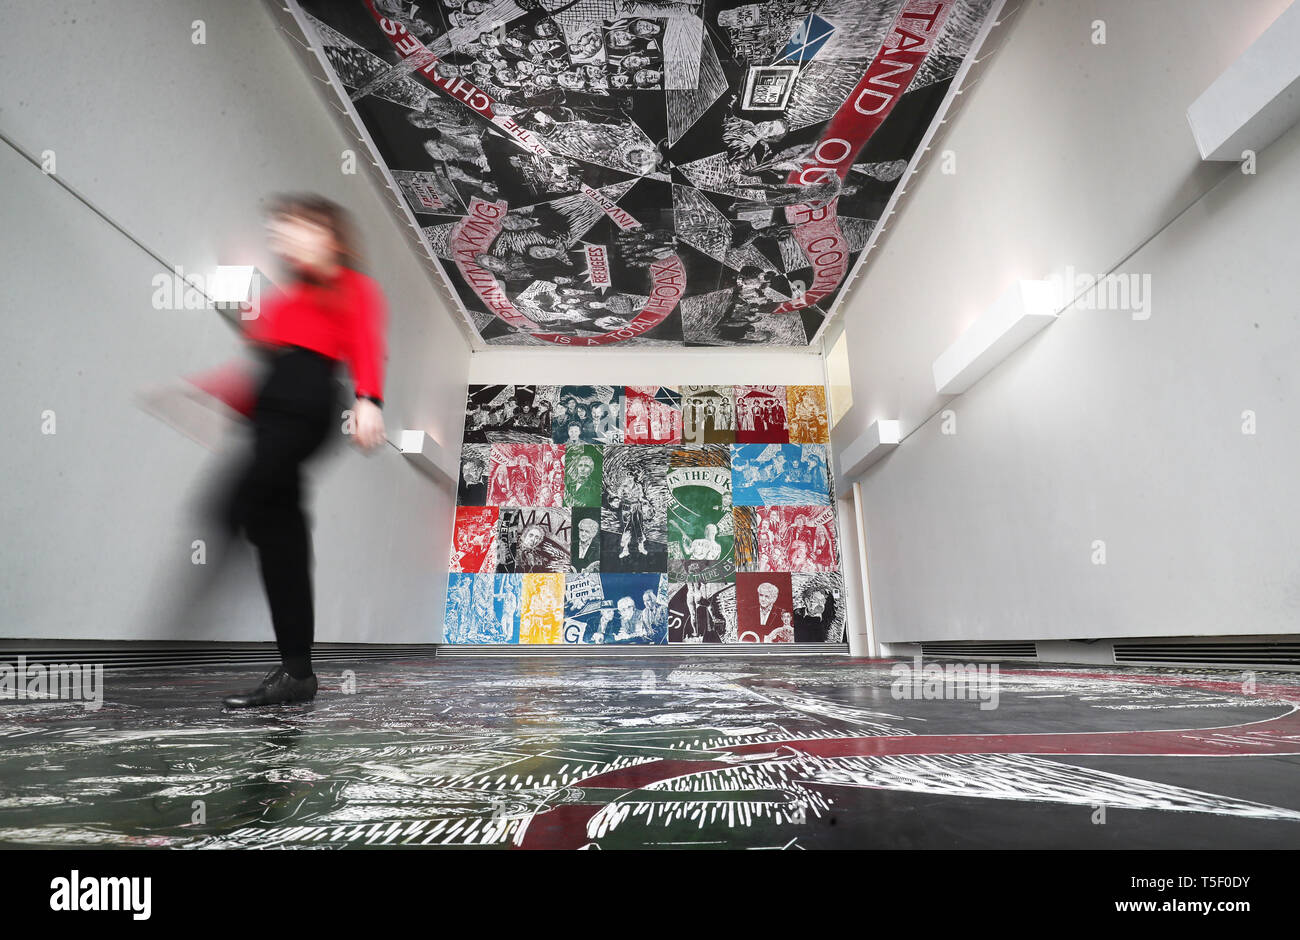 A large scale work by printmaker Thomas Kilpper titled 'The Politics of Heritage' which is carved directly into the rubber floor of the gallery and covers the wall and ceiling is one of several new installations that have been commissioned to feature in the opening exhibition at the new Edinburgh Printmakers at Castle Mills, Edinburgh. - Stock Image